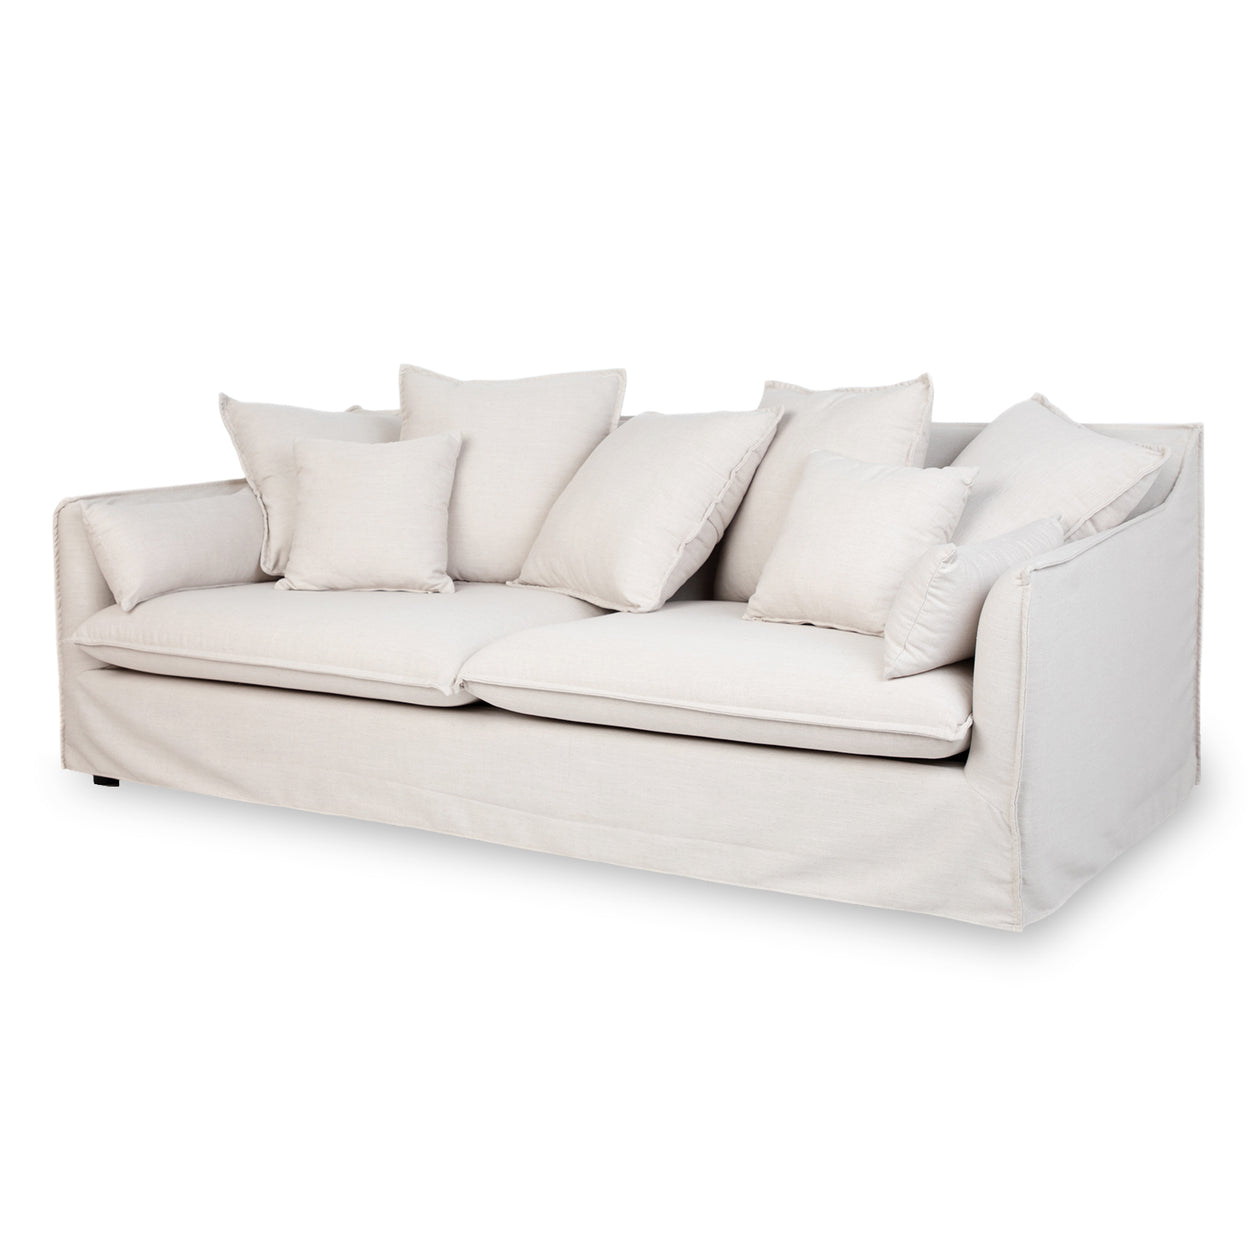 SKY - 3 Seat Sofa with Natural Cover